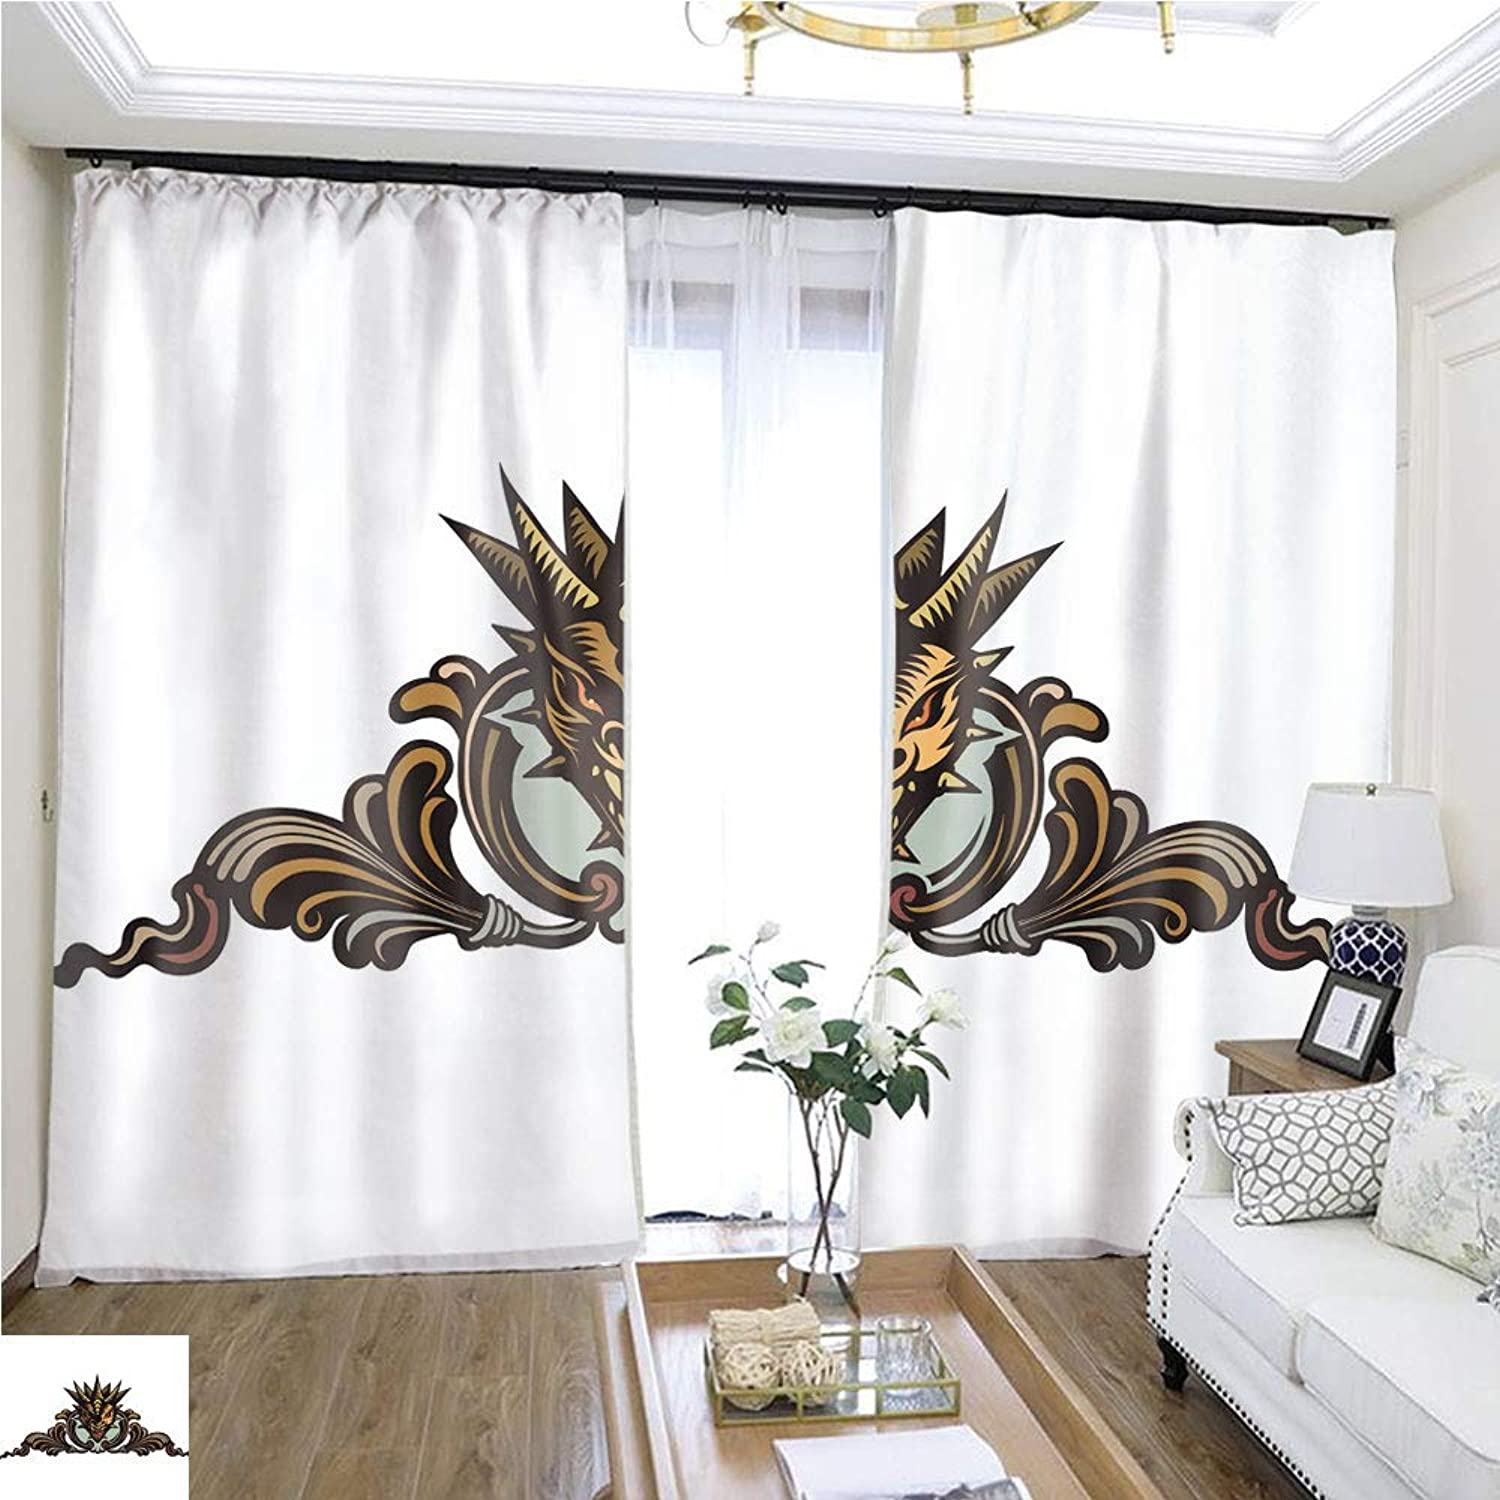 Air Port Screen Dragons Head Tattoo W96 x L96 Reduce Noise Highprecision Curtains for bedrooms Living Rooms Kitchens etc.